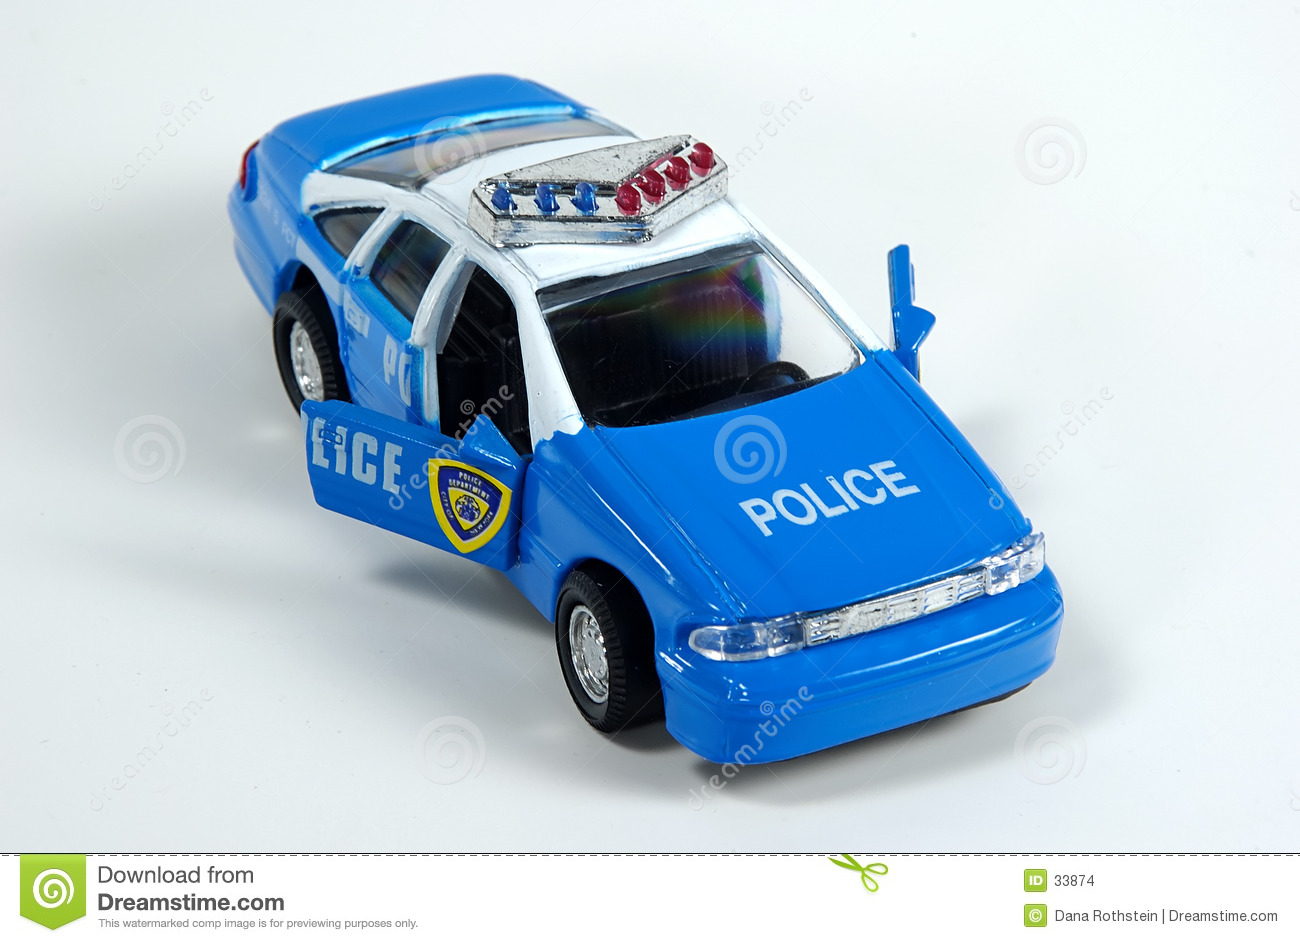 Police Car Toys For Boys : Police toys imgkid the image kid has it